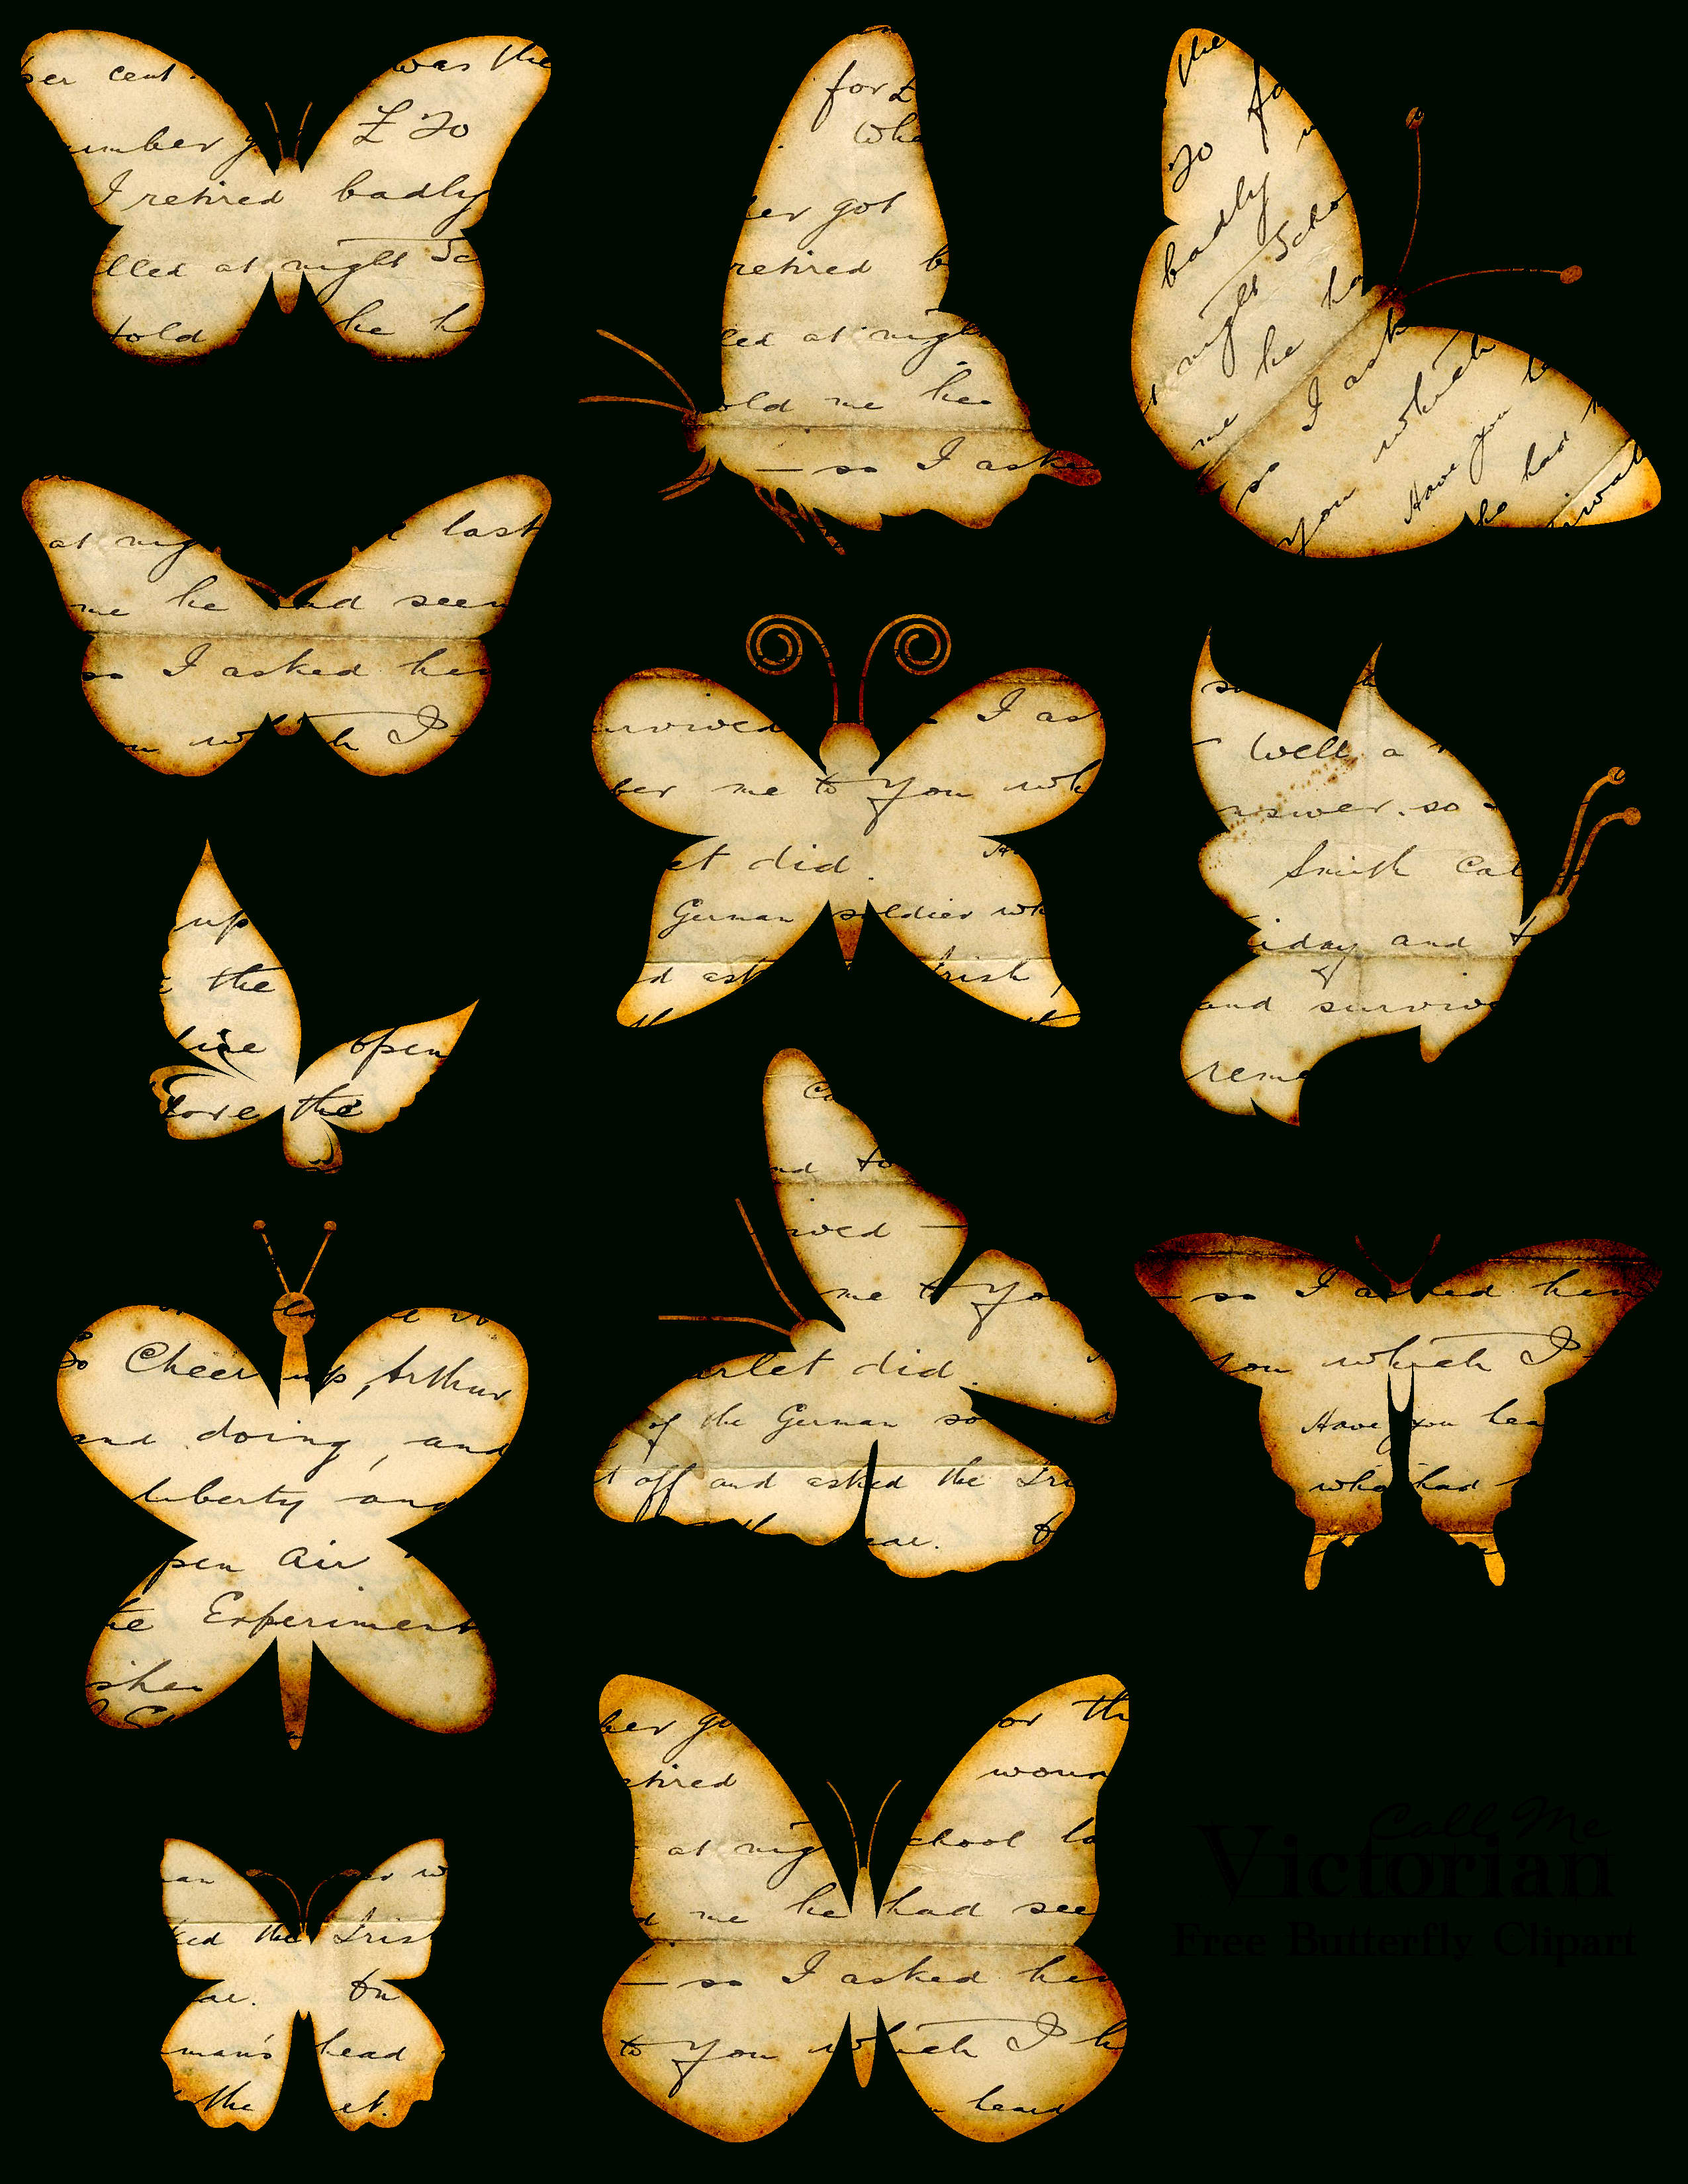 Free Butterfly Clipart Images - Distressed Handwriting Overlay - Free Printable Butterfly Clipart